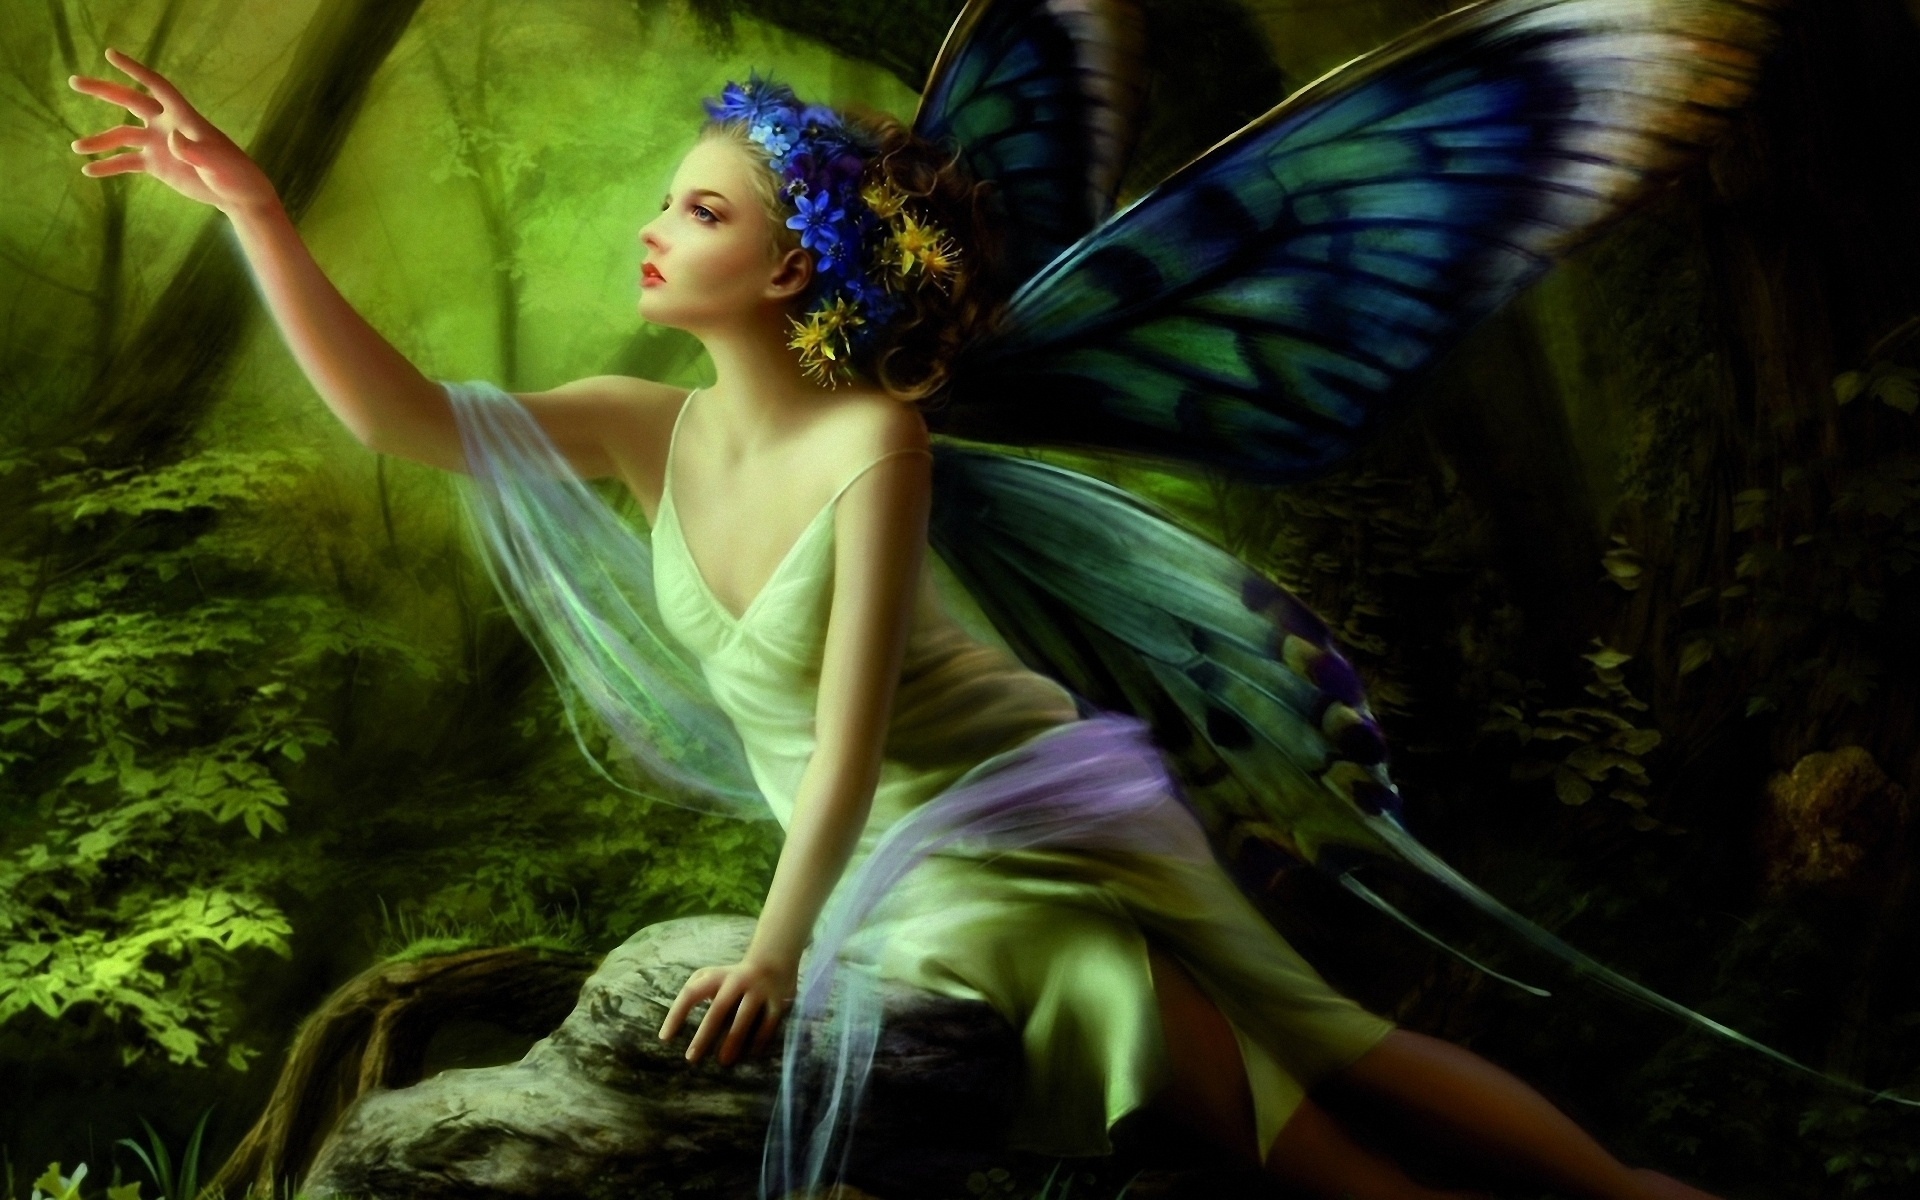 Butterfly fairy 1920 x 1200 download close